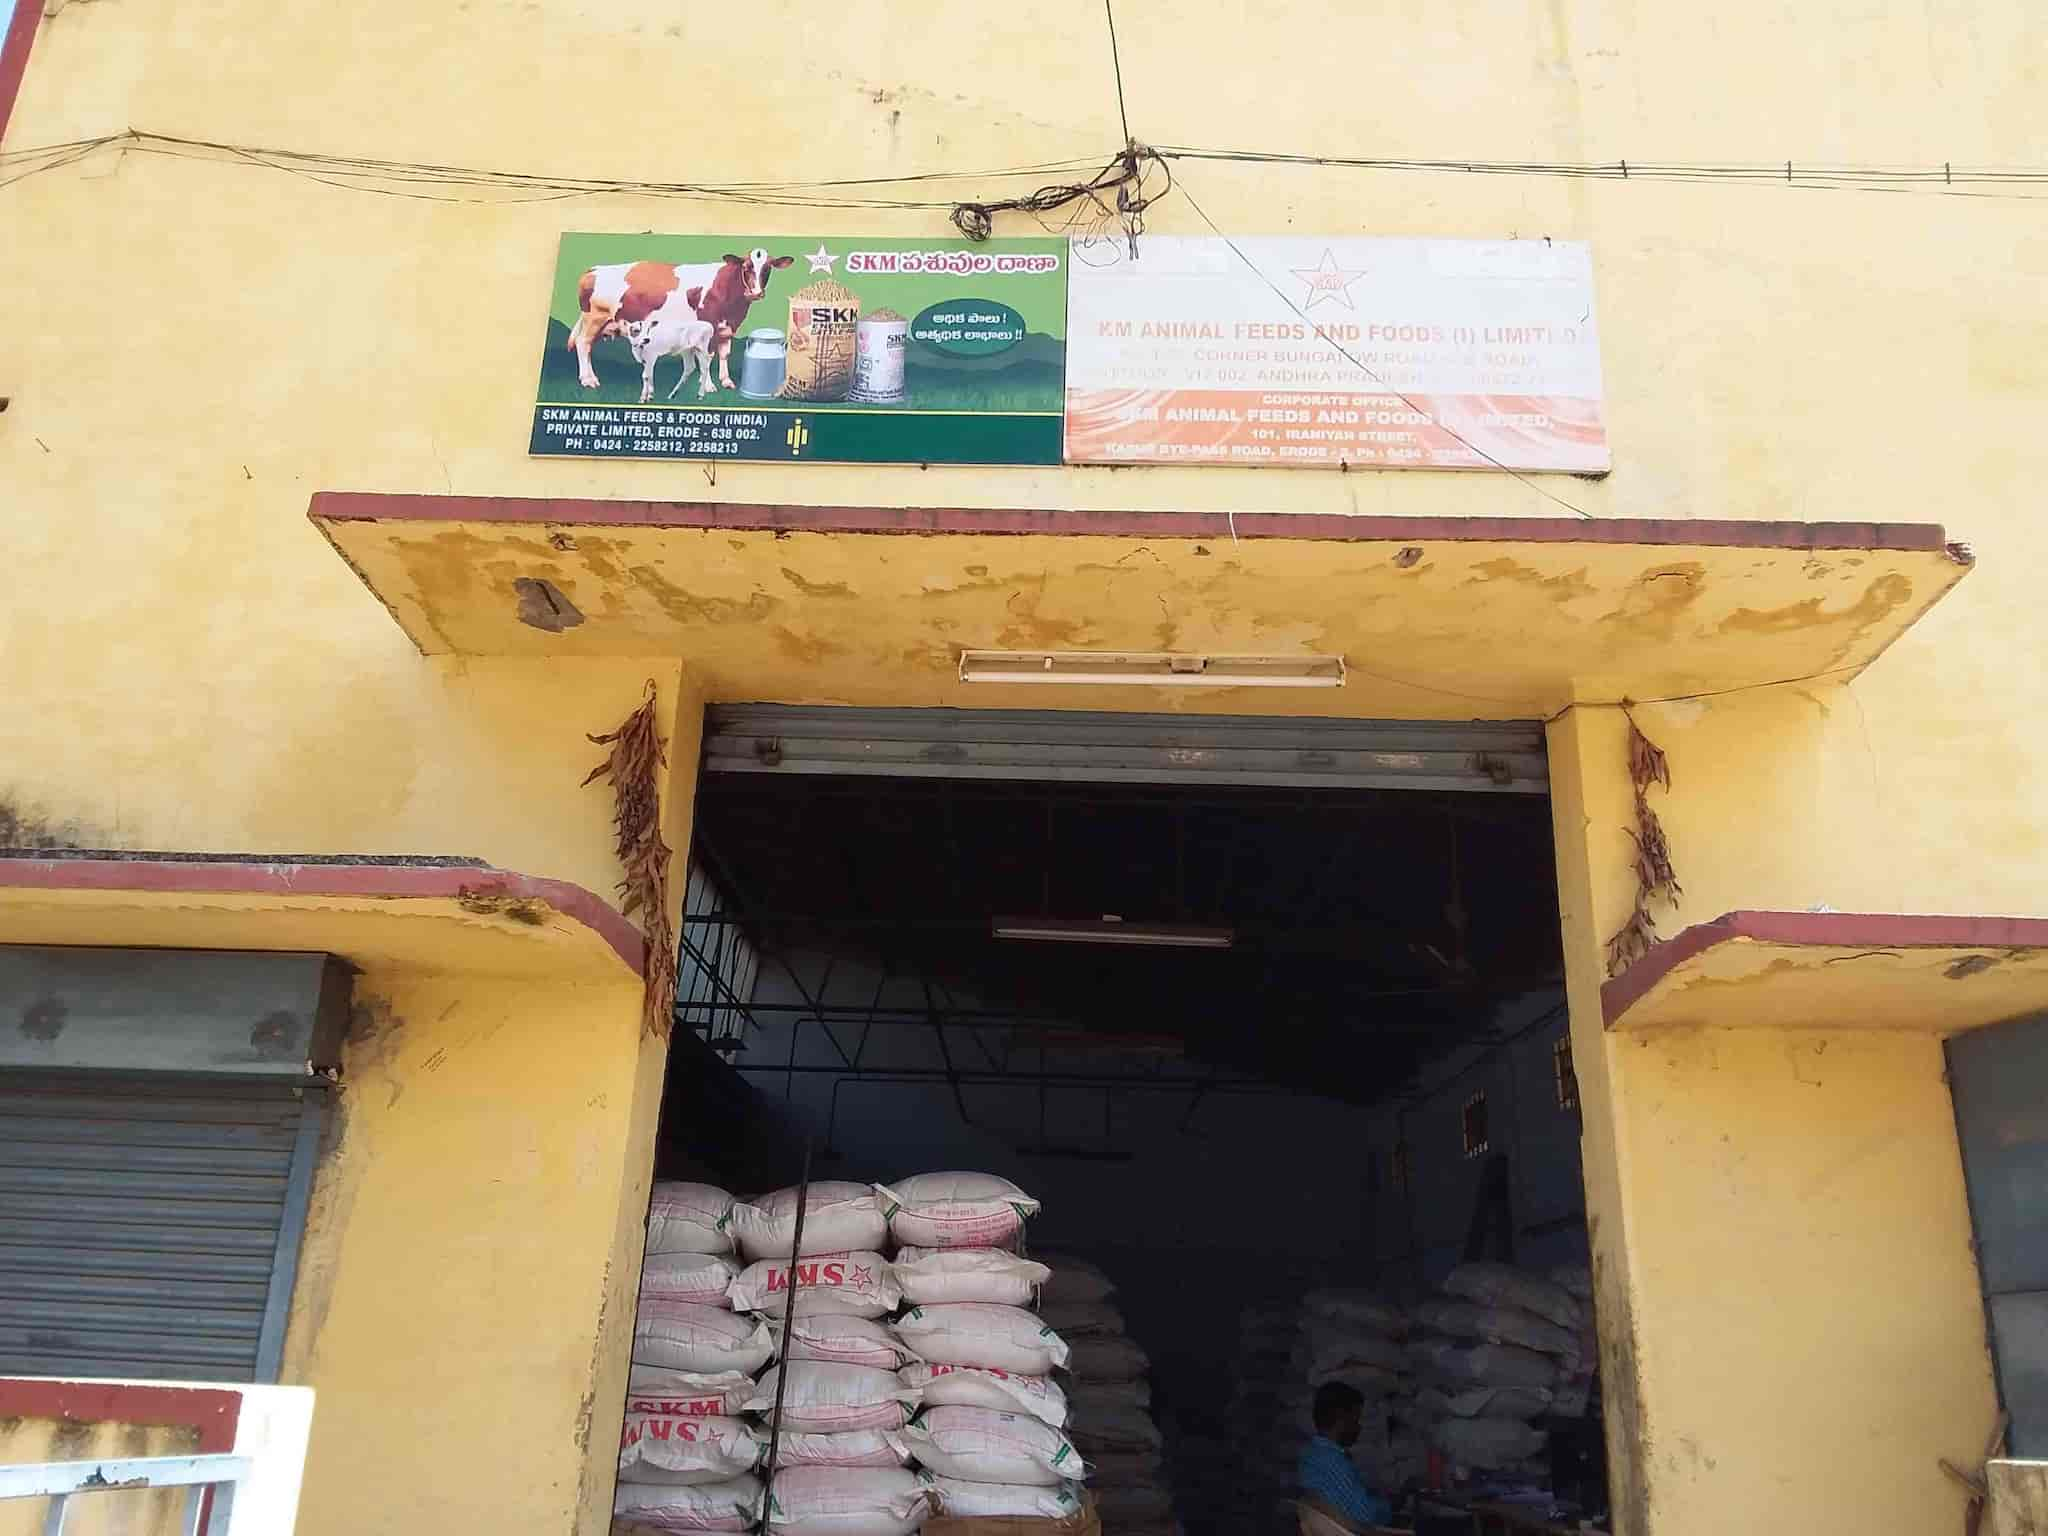 SKM Animal Feeds And Foods Ind Pvt ltd, Greams Pet - Animal